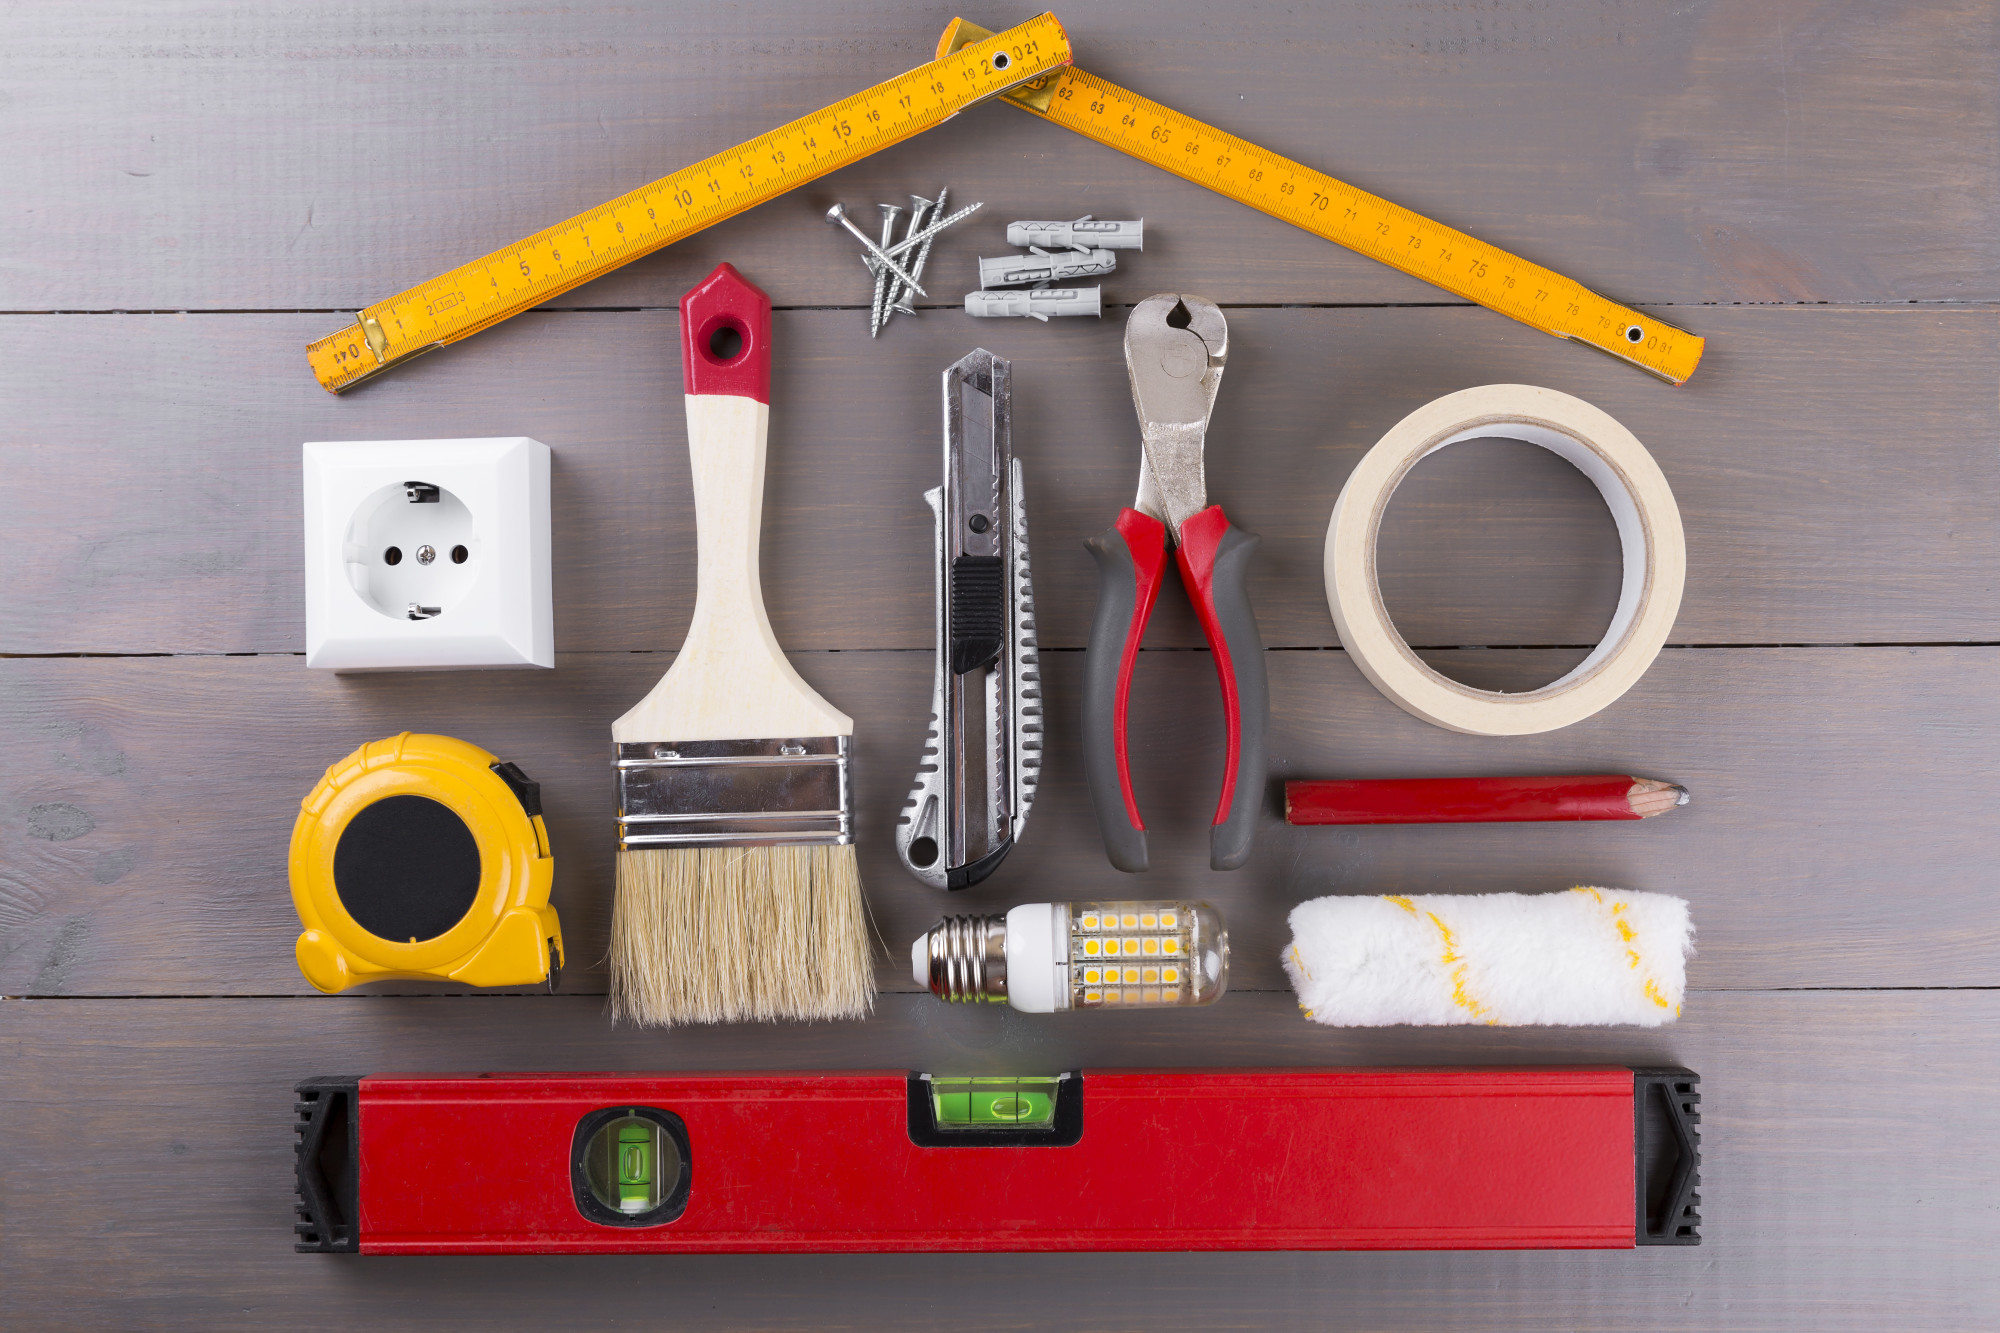 Spruce up your home this weekend with these great ideas. Easy home DIY projects you could complete this weekend to add flair and style to your living space